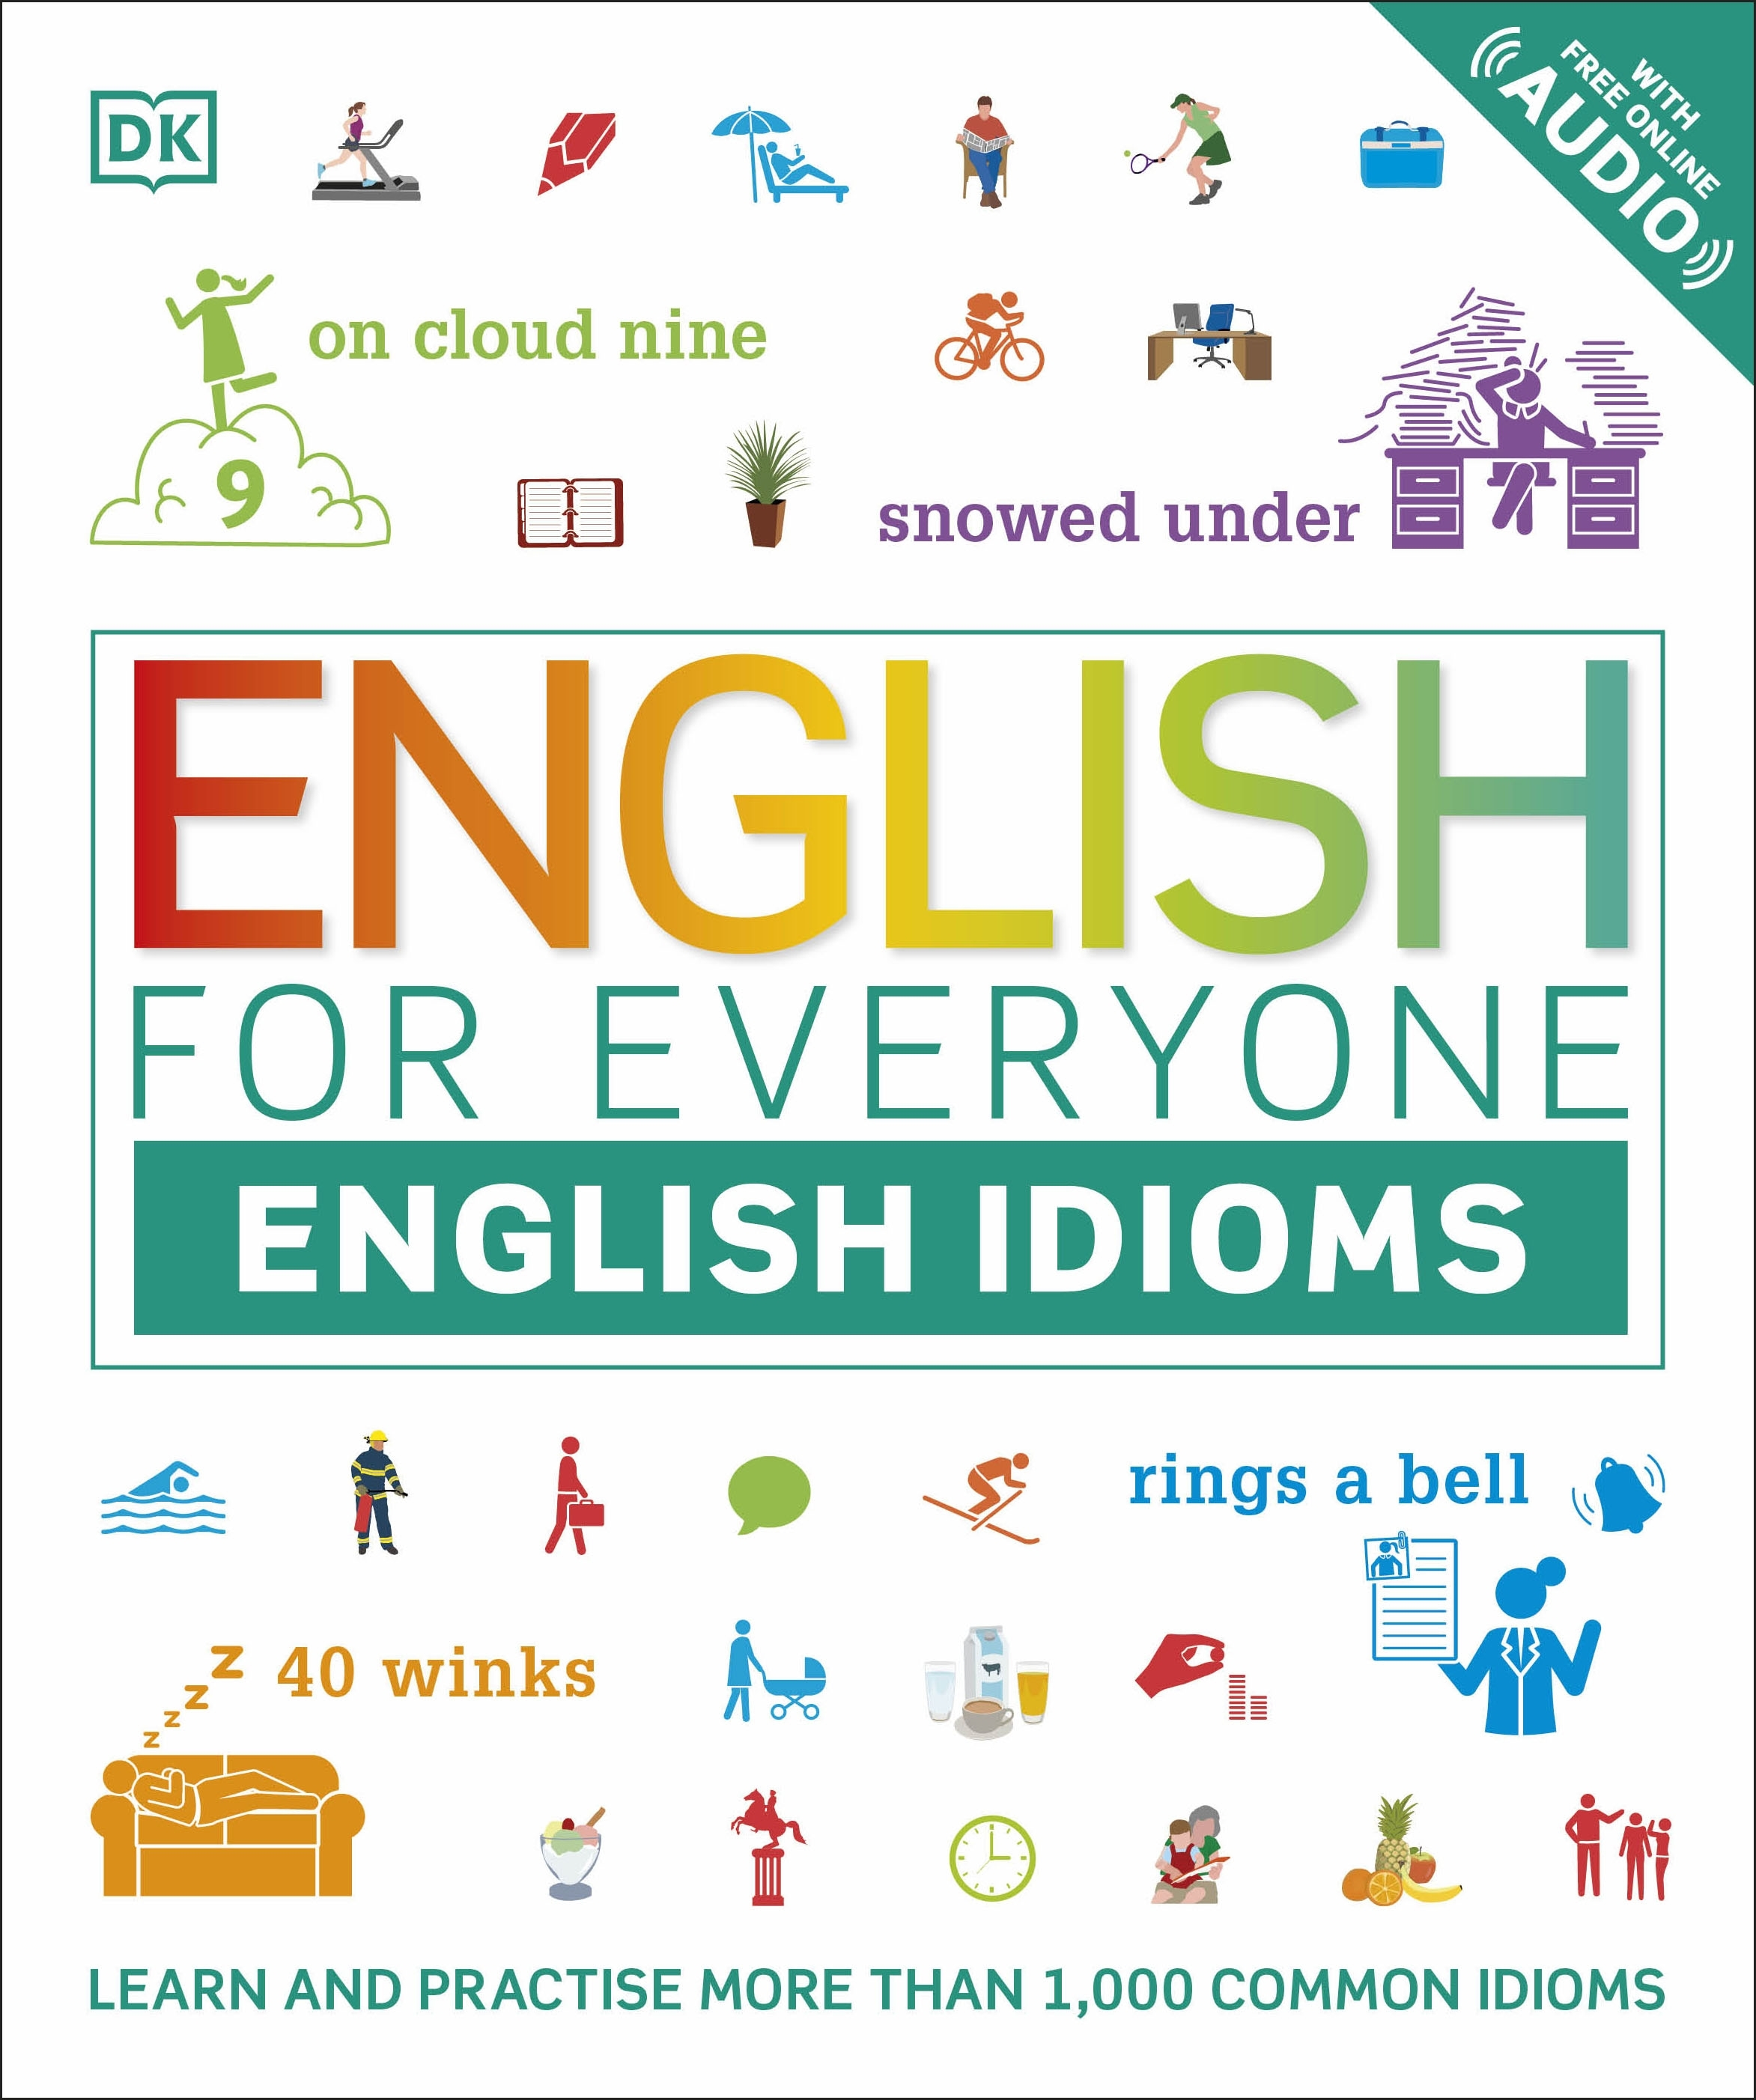 English for Everyone: English Idioms by DK - Penguin Books